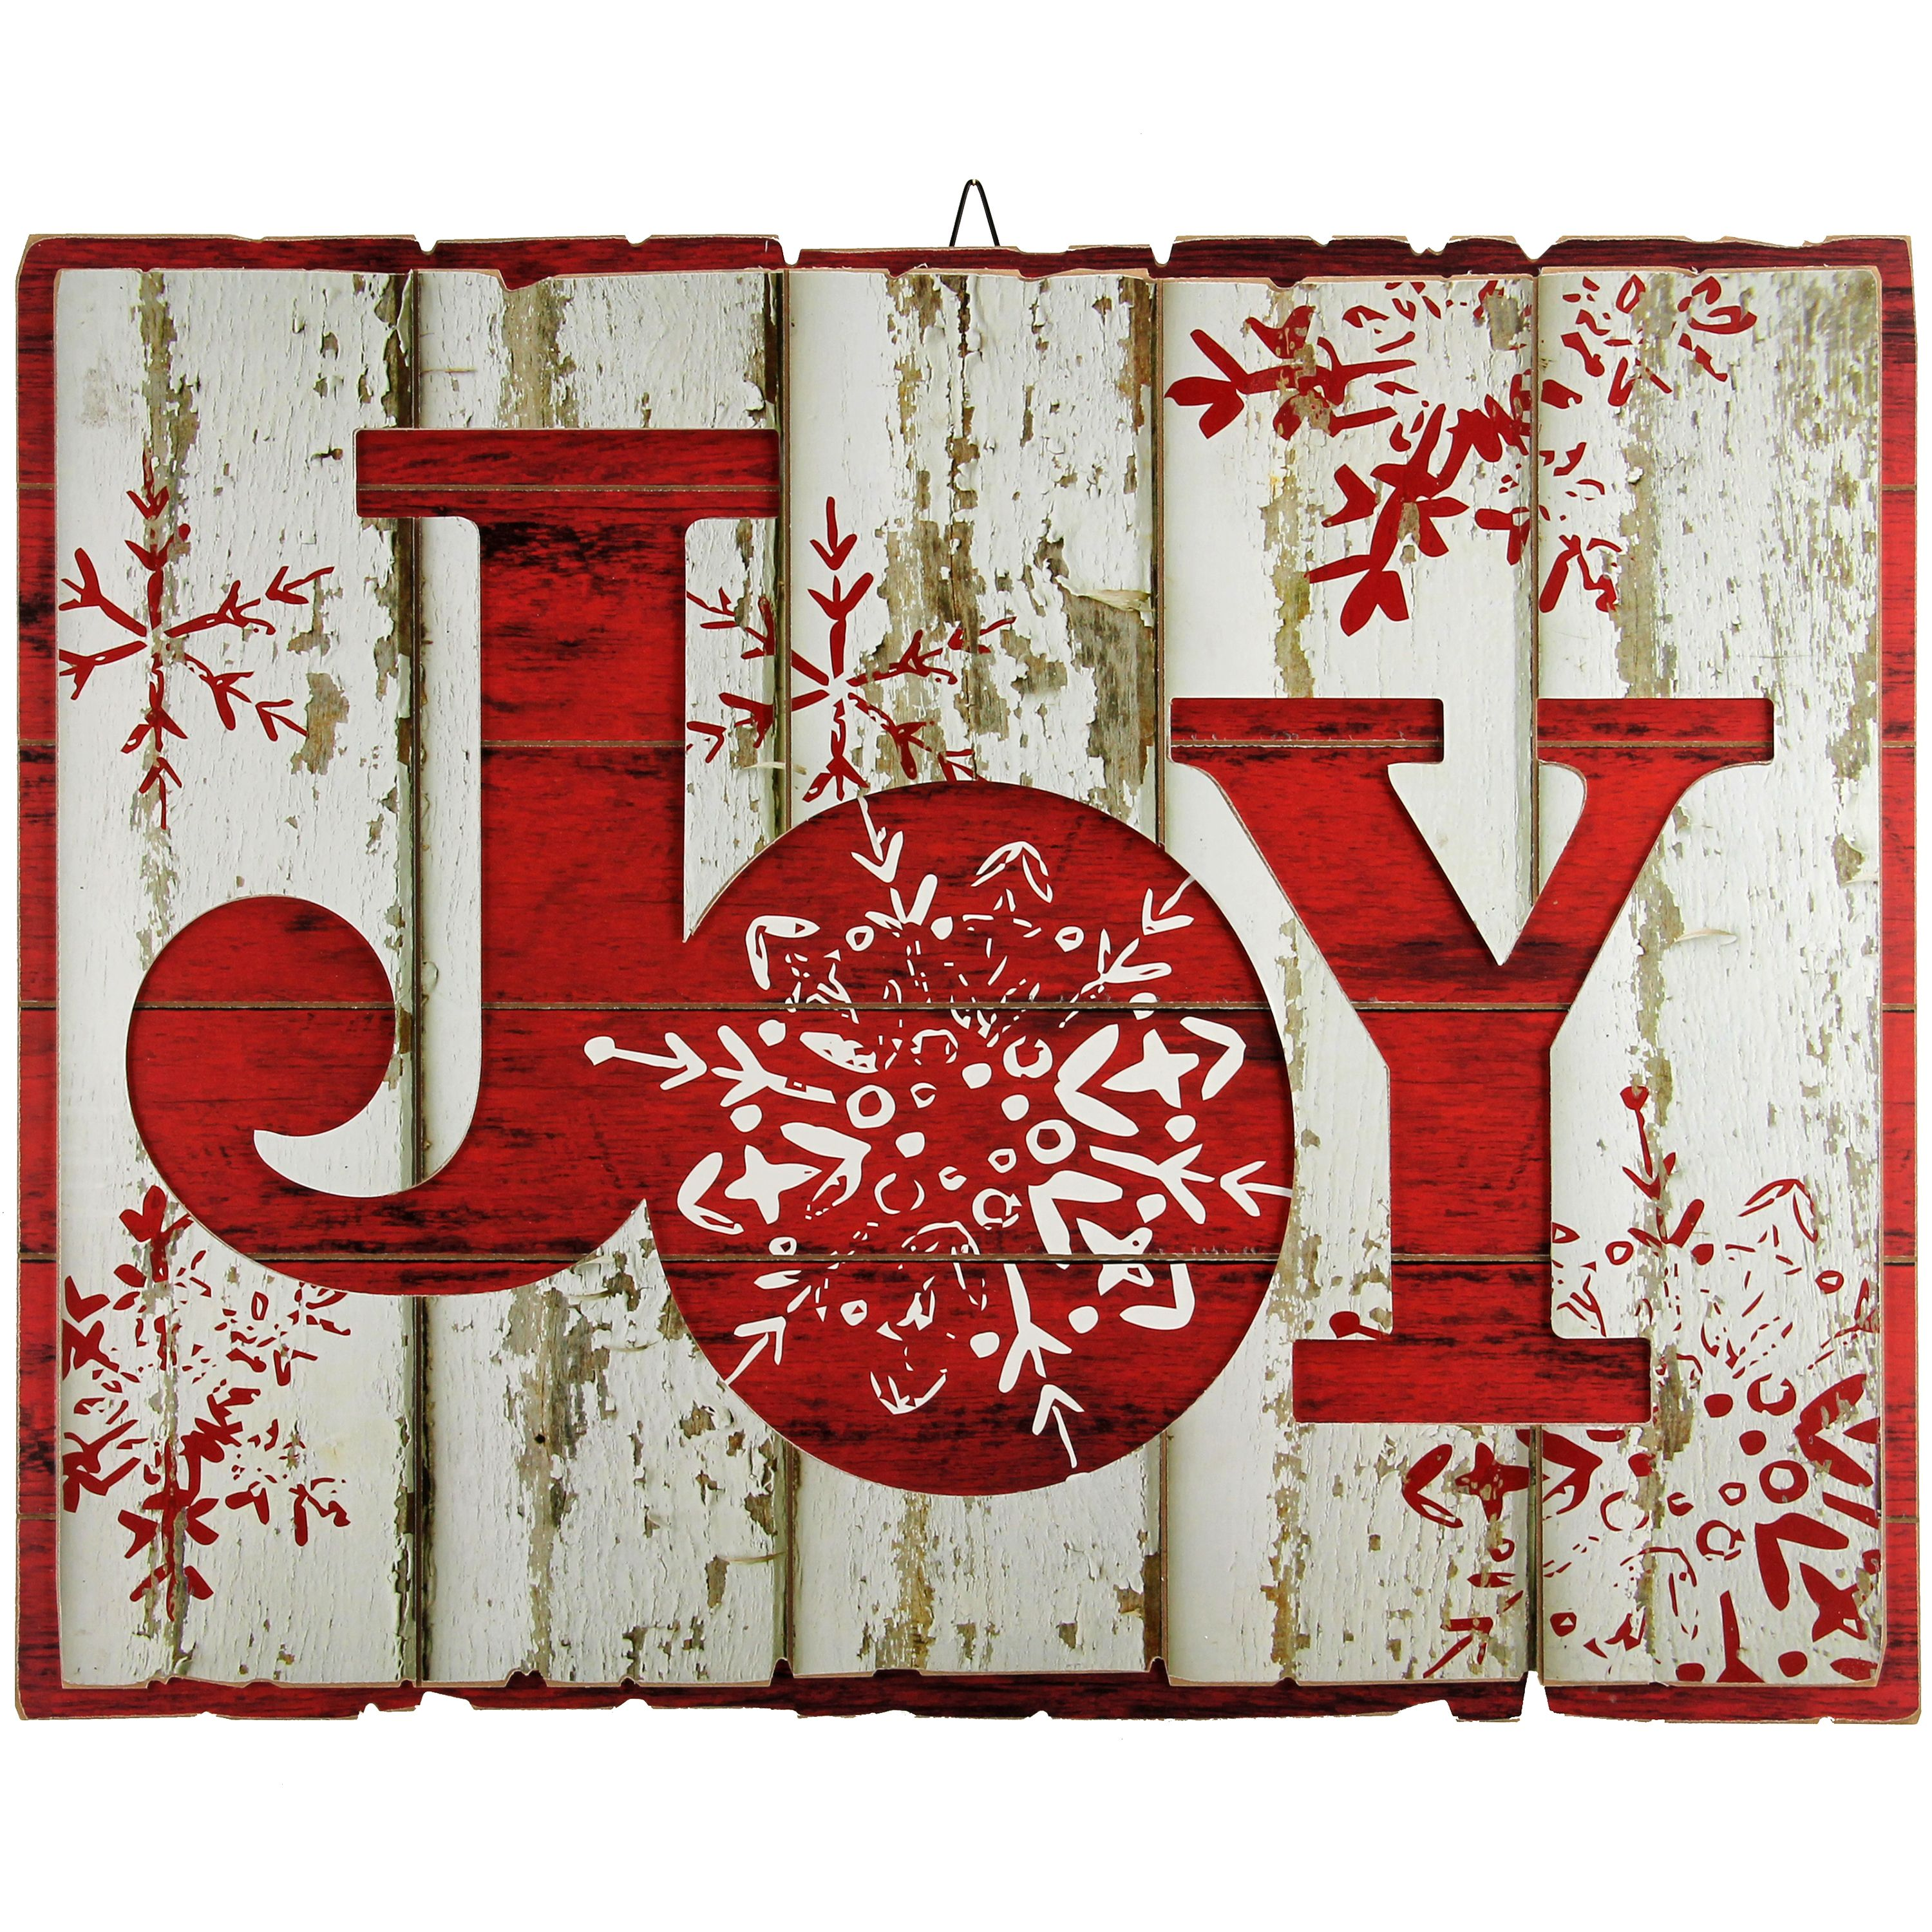 HOLIDAY TIME JOY DISTRESSED WOOD SIGN, 23 X 18 INCH